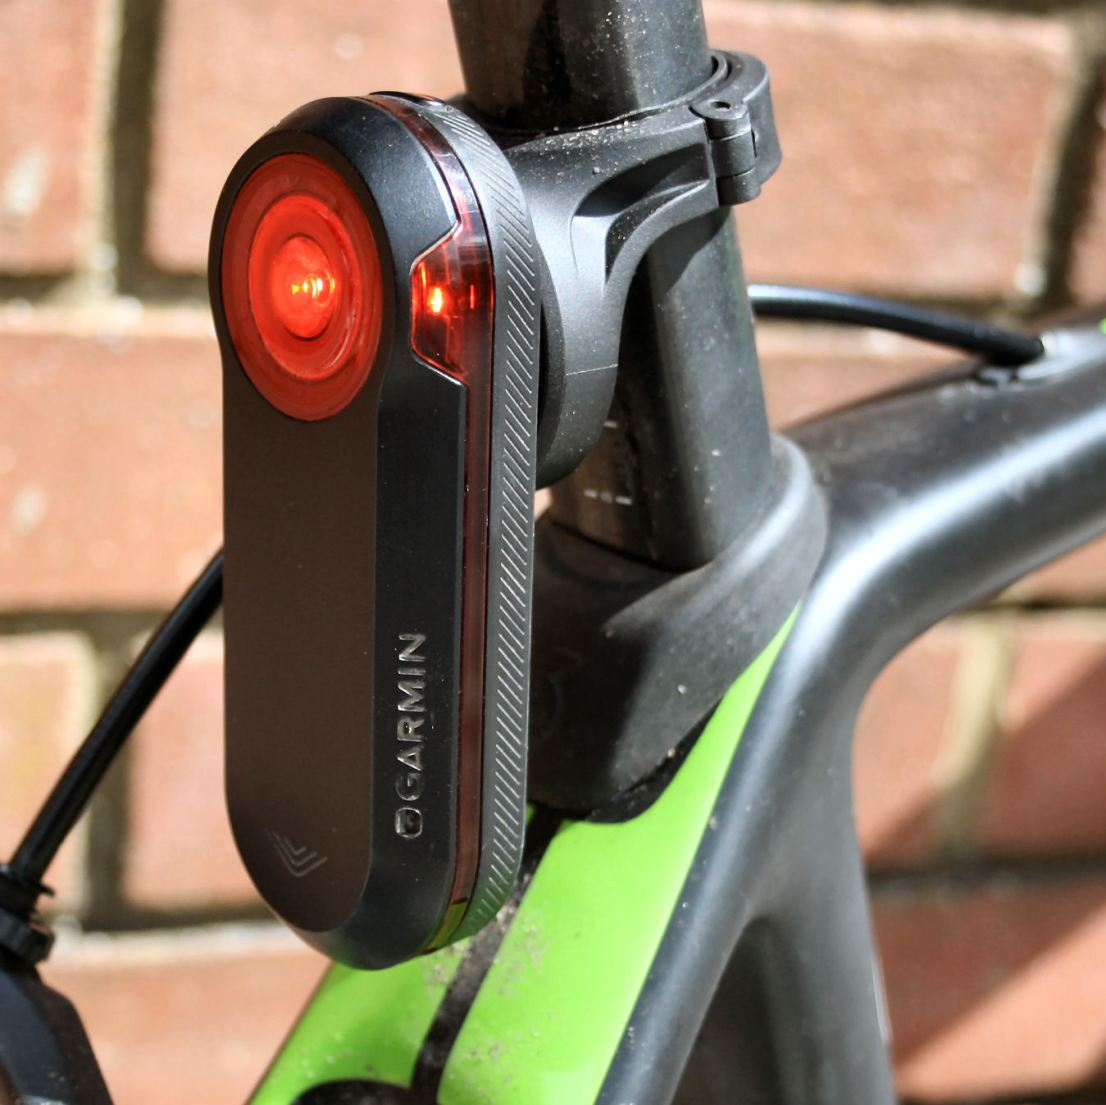 The 'proper' circular mount is not included and CAN fit to a D-shaped seatpost